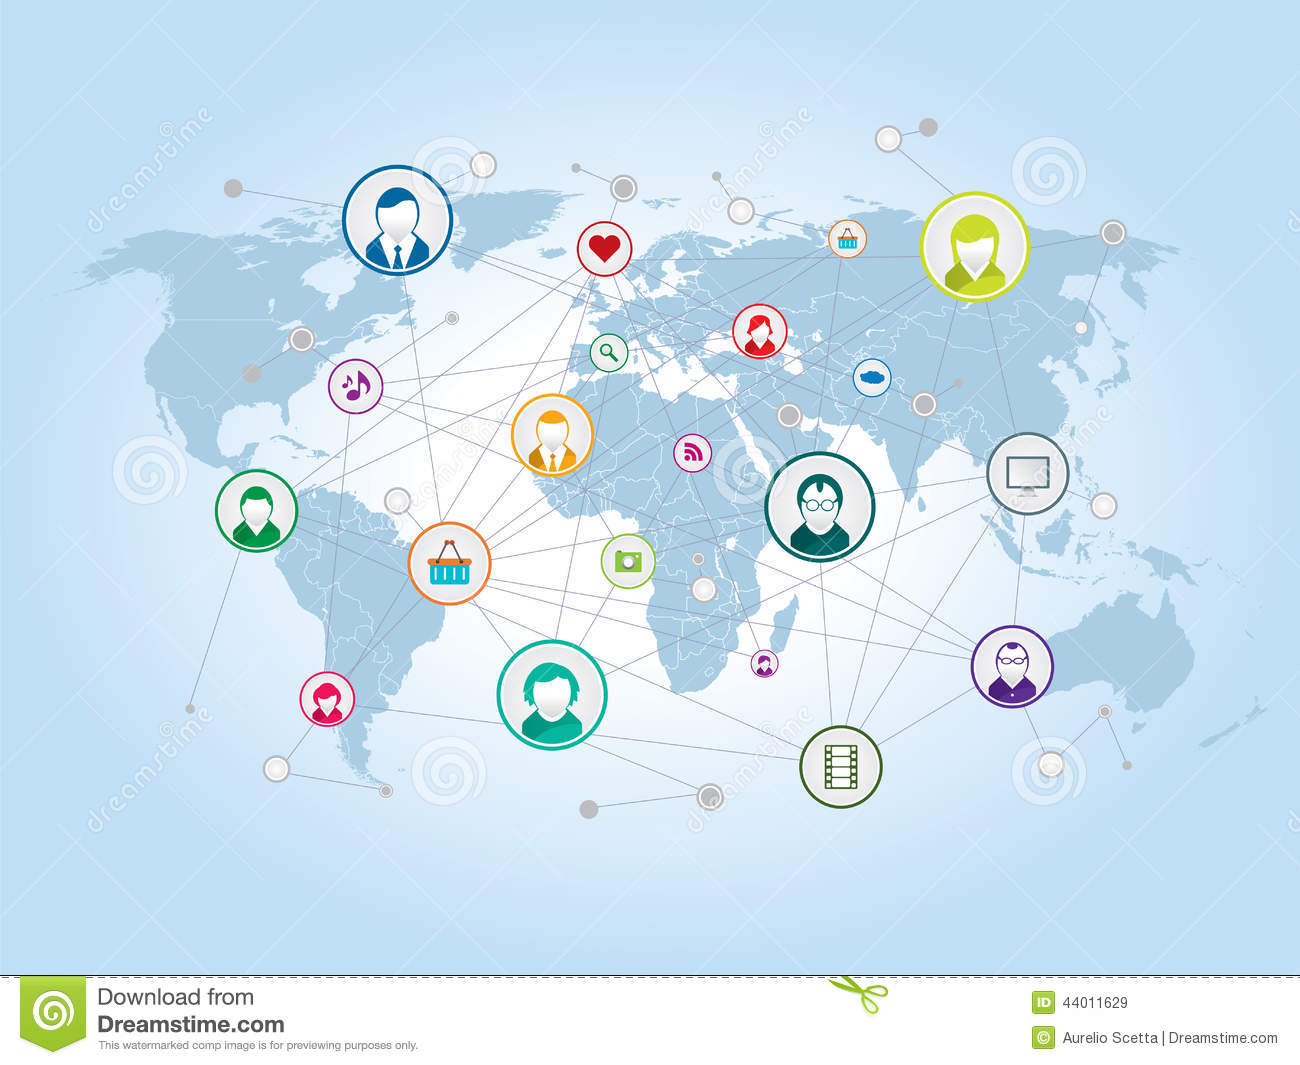 Sharing and social network on the Internet